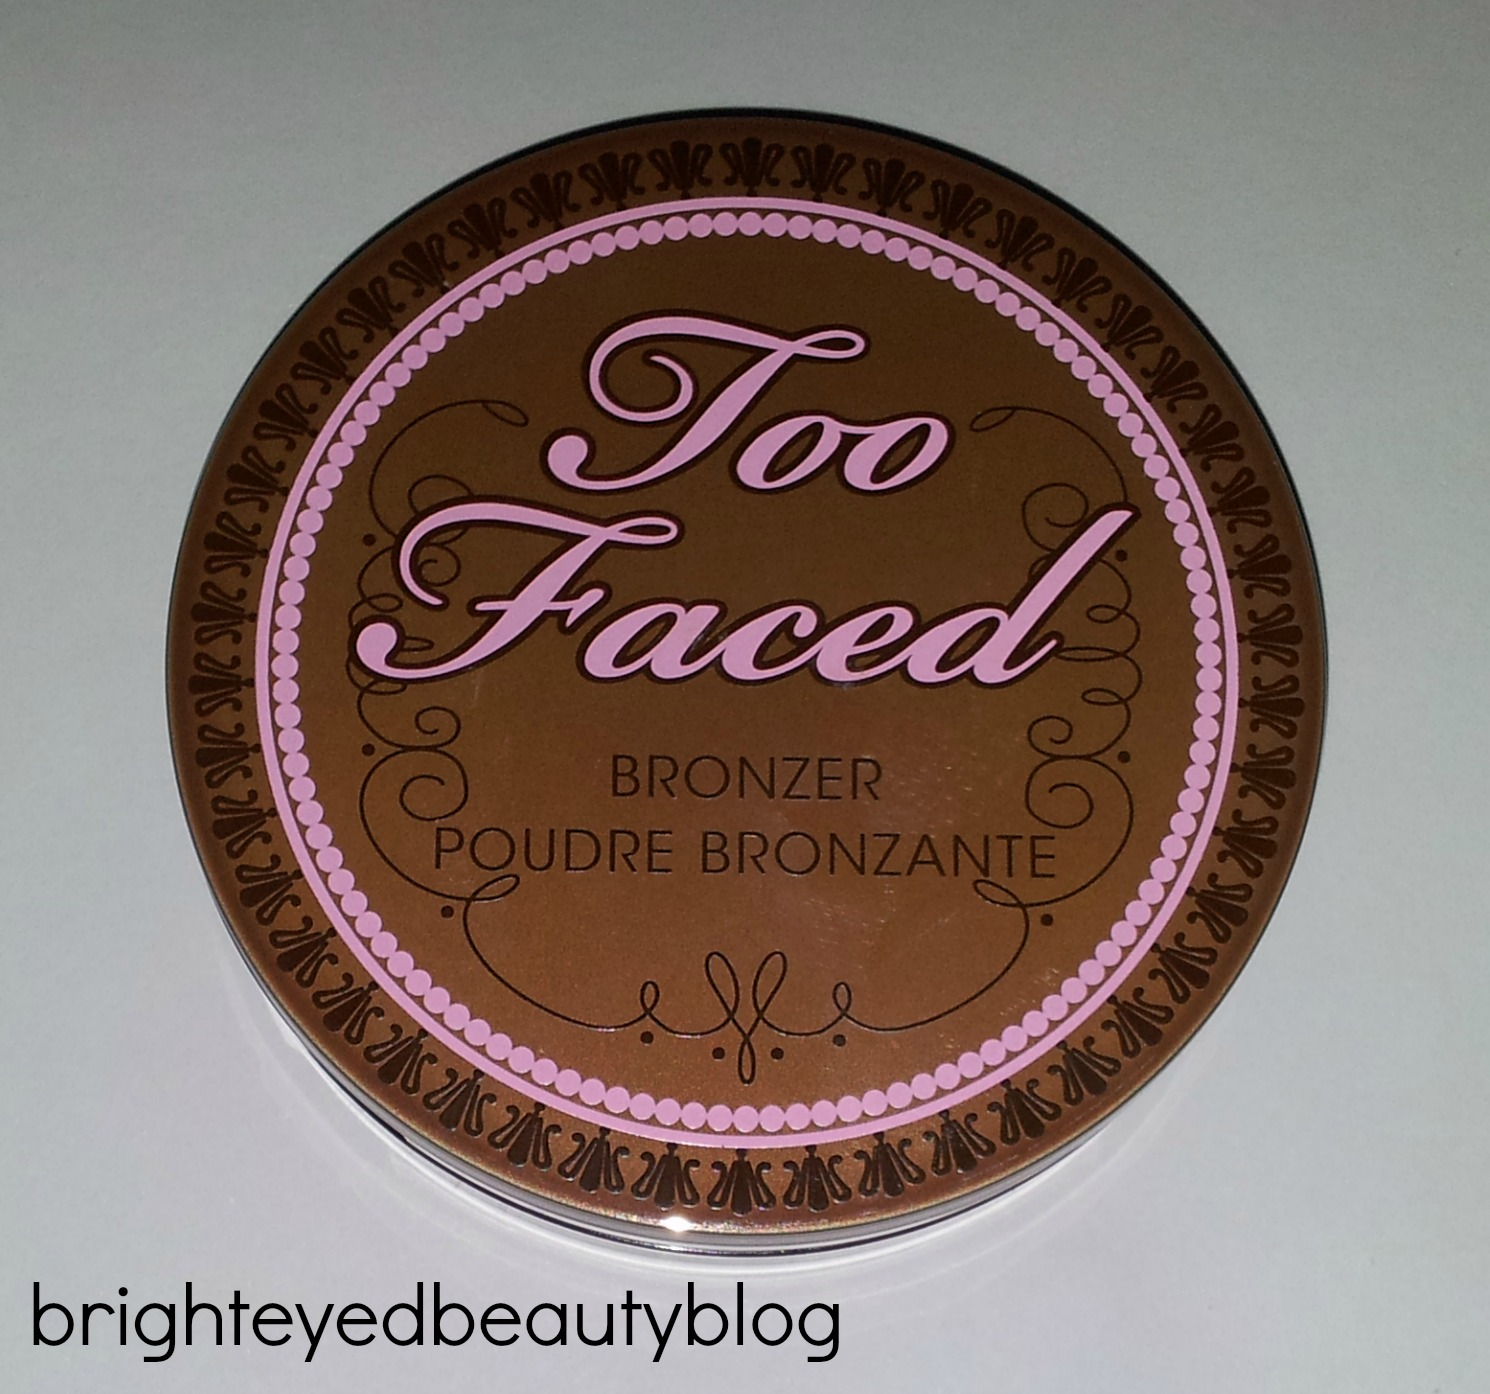 Bright Eyed Beauty Blog: Review and Swatches: Too Faced Chocolate ...